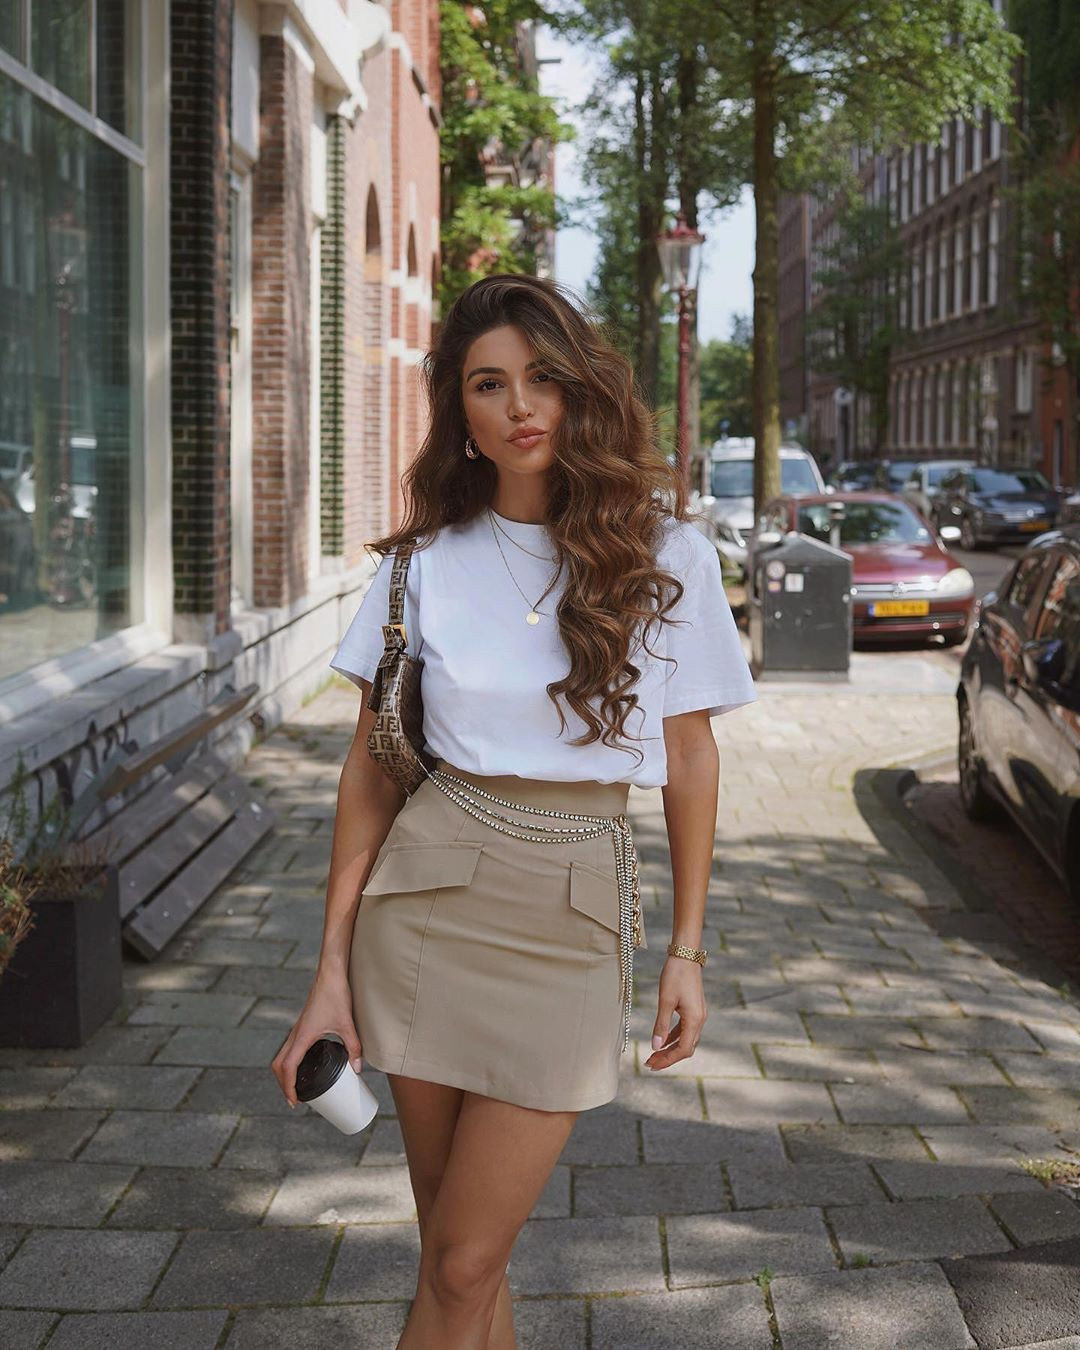 "Negin Mirsalehi on Instagram: ""Work attire and getting things done!"